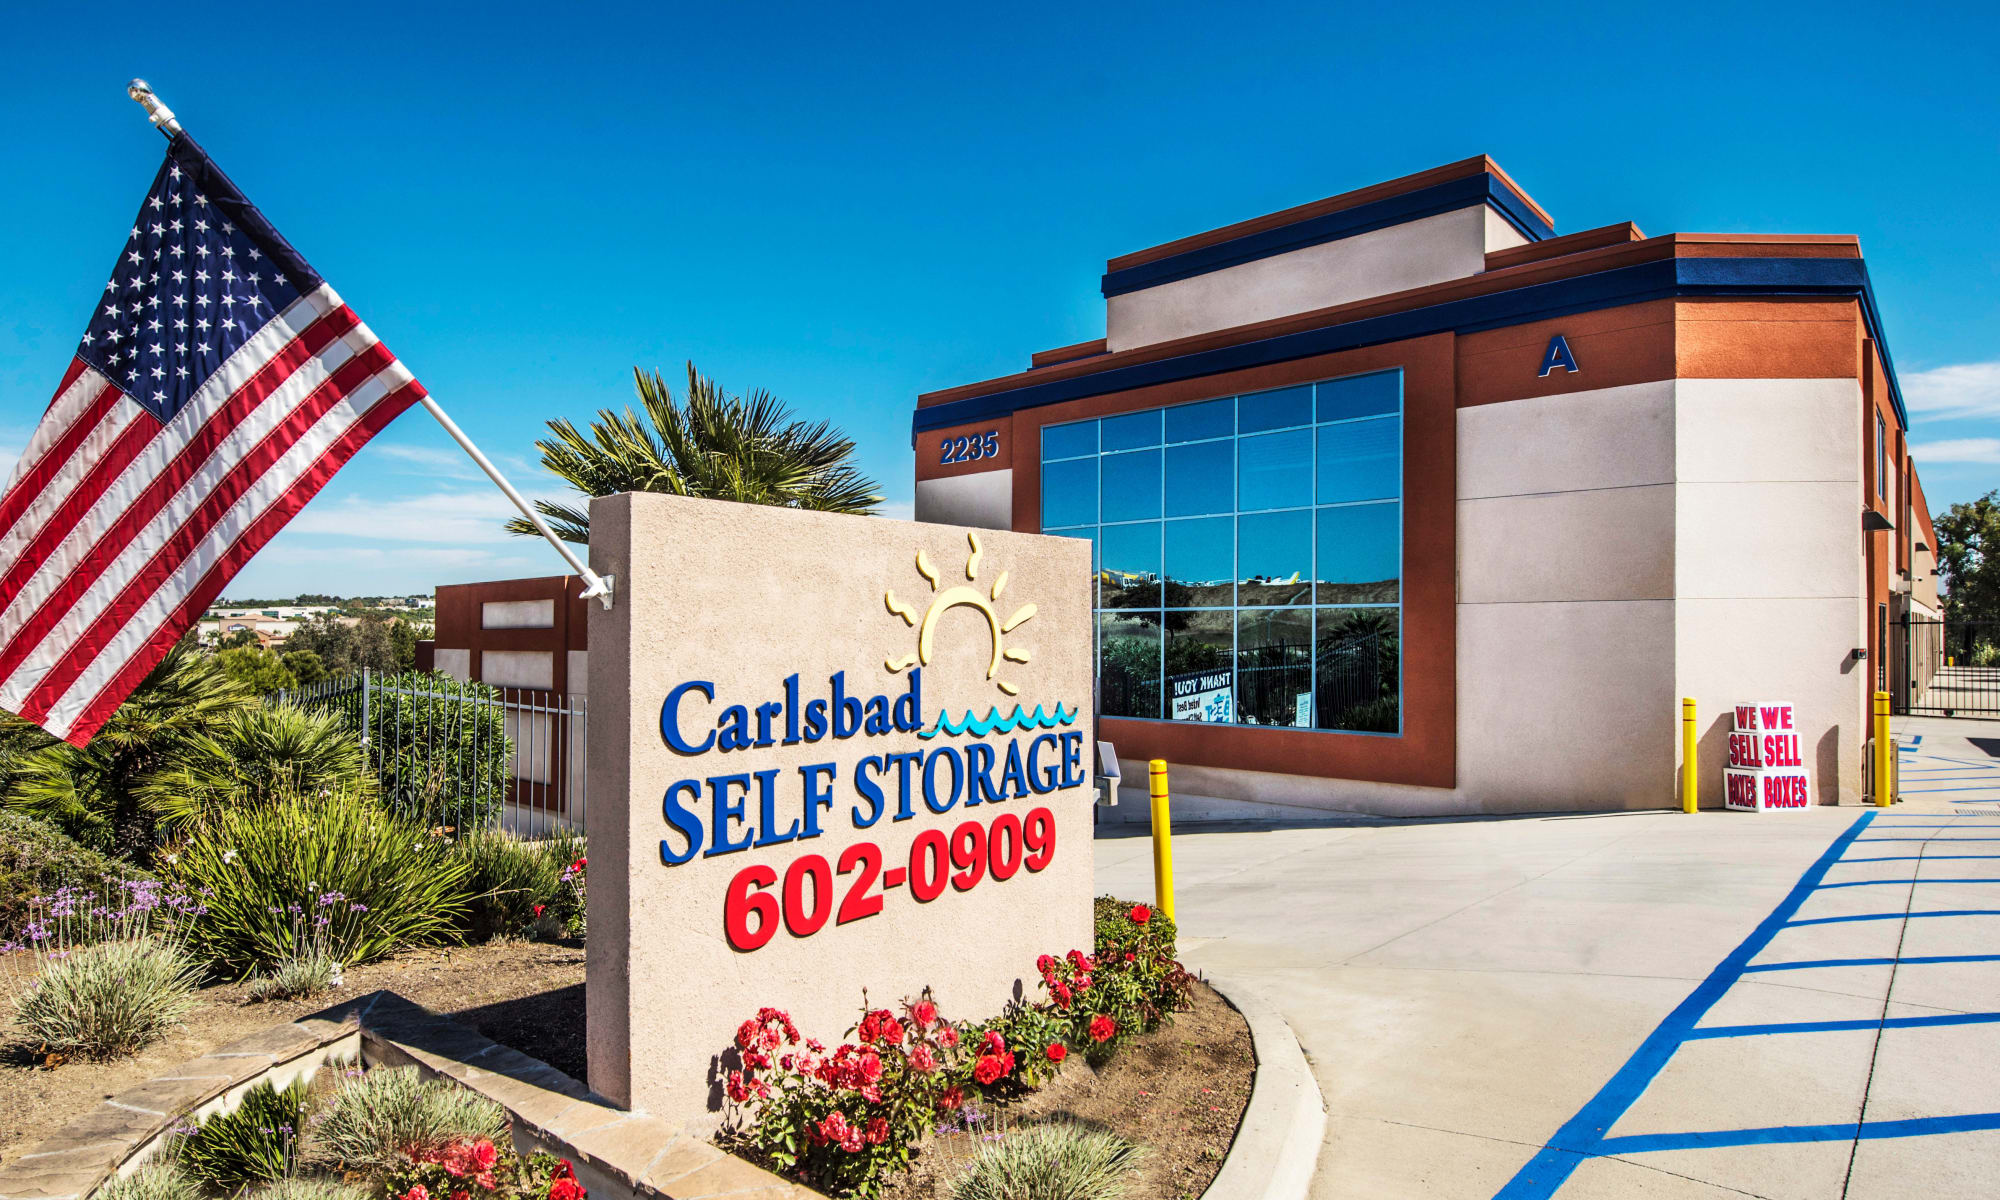 Self storage hero for Carlsbad